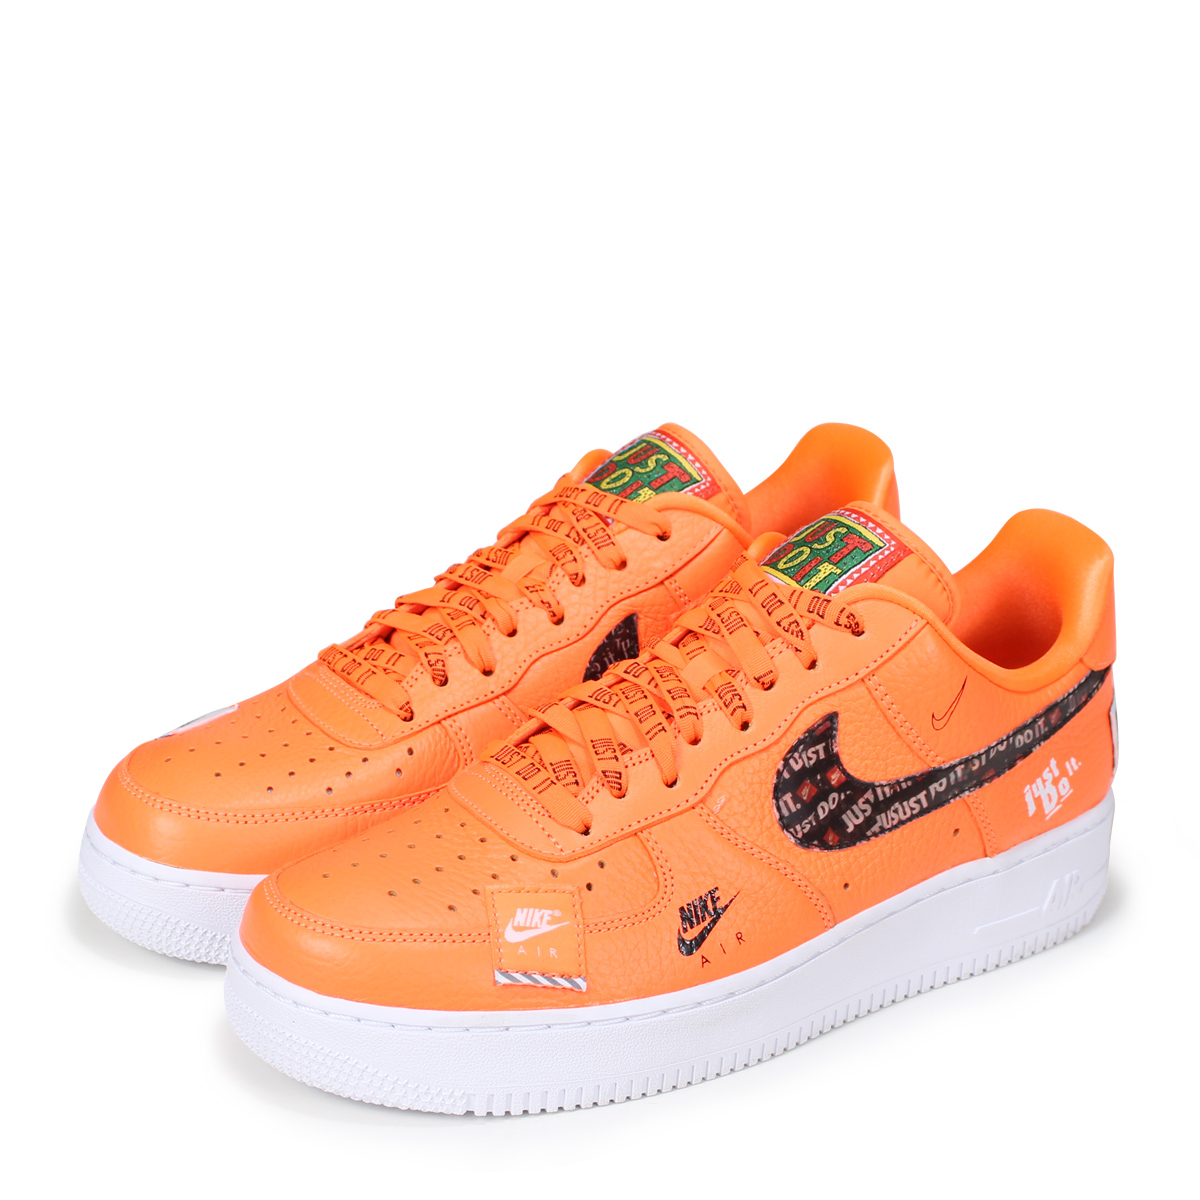 Nike Do Nike Air Force 1 07 Premium Just Do It Nike Air Force 1 Sneakers Men Ar7719 800 Orange Load Planned Shinnyu Load In Reservation Product 7 13